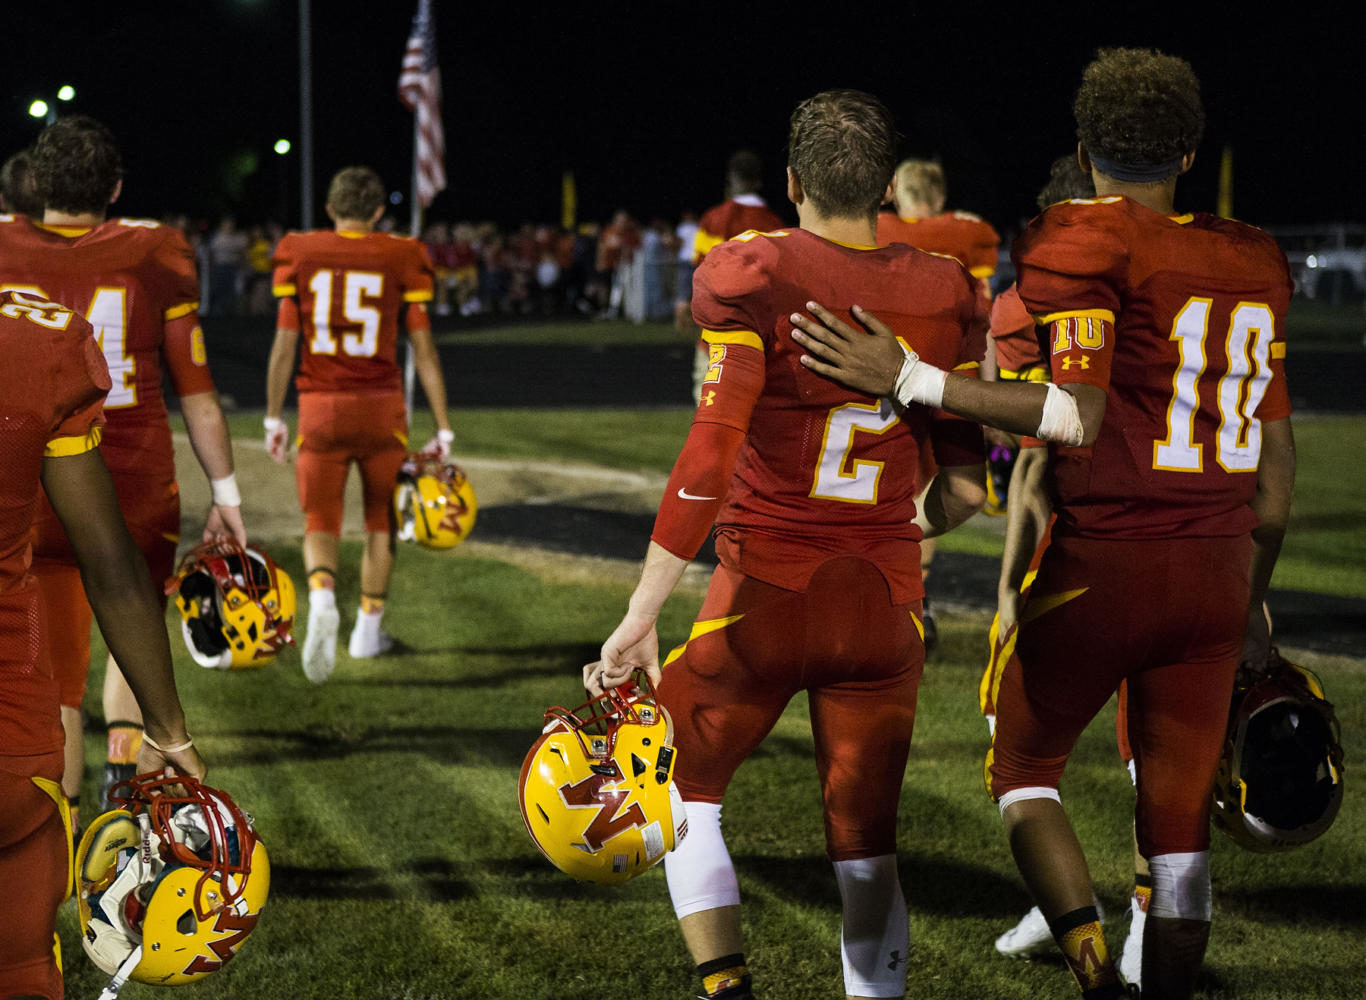 Murphysboro quarterback Gavin Topp (10) embraces running back Brandon Caldwell after losing to the Carbondale Terriers in the the 100th meeting of the two teams on Friday, Aug. 25, 2017, at